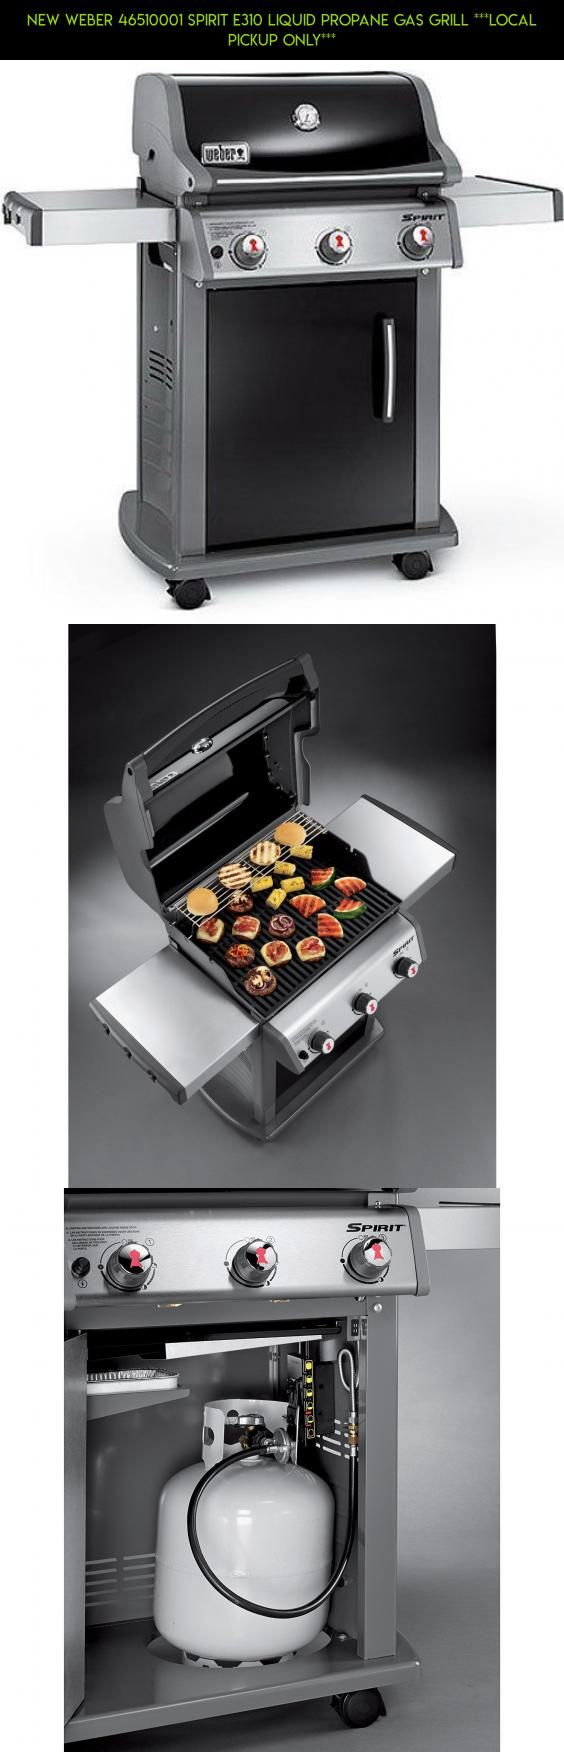 New Weber 46510001 Spirit E310 Liquid Propane Gas Grill ***LOCAL PICKUP ONLY*** #products #shopping #kit #gadgets #parts #racing #technology #plans #grills #tech #camera #fpv #drone #weber #gas